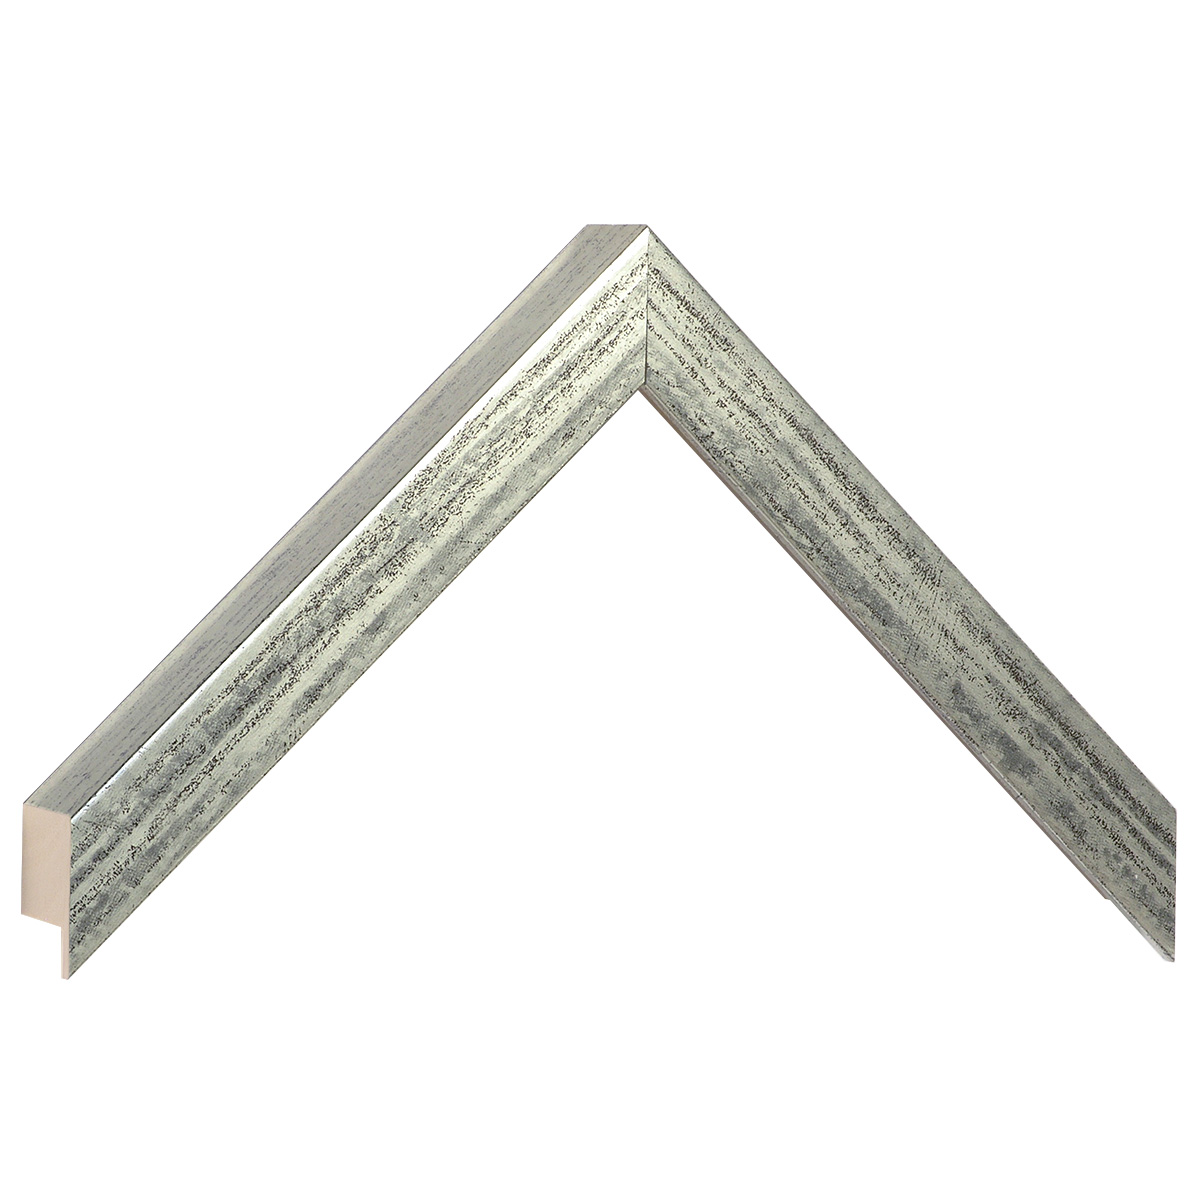 Moulding ayous, width 20mm height 32 - Old silver